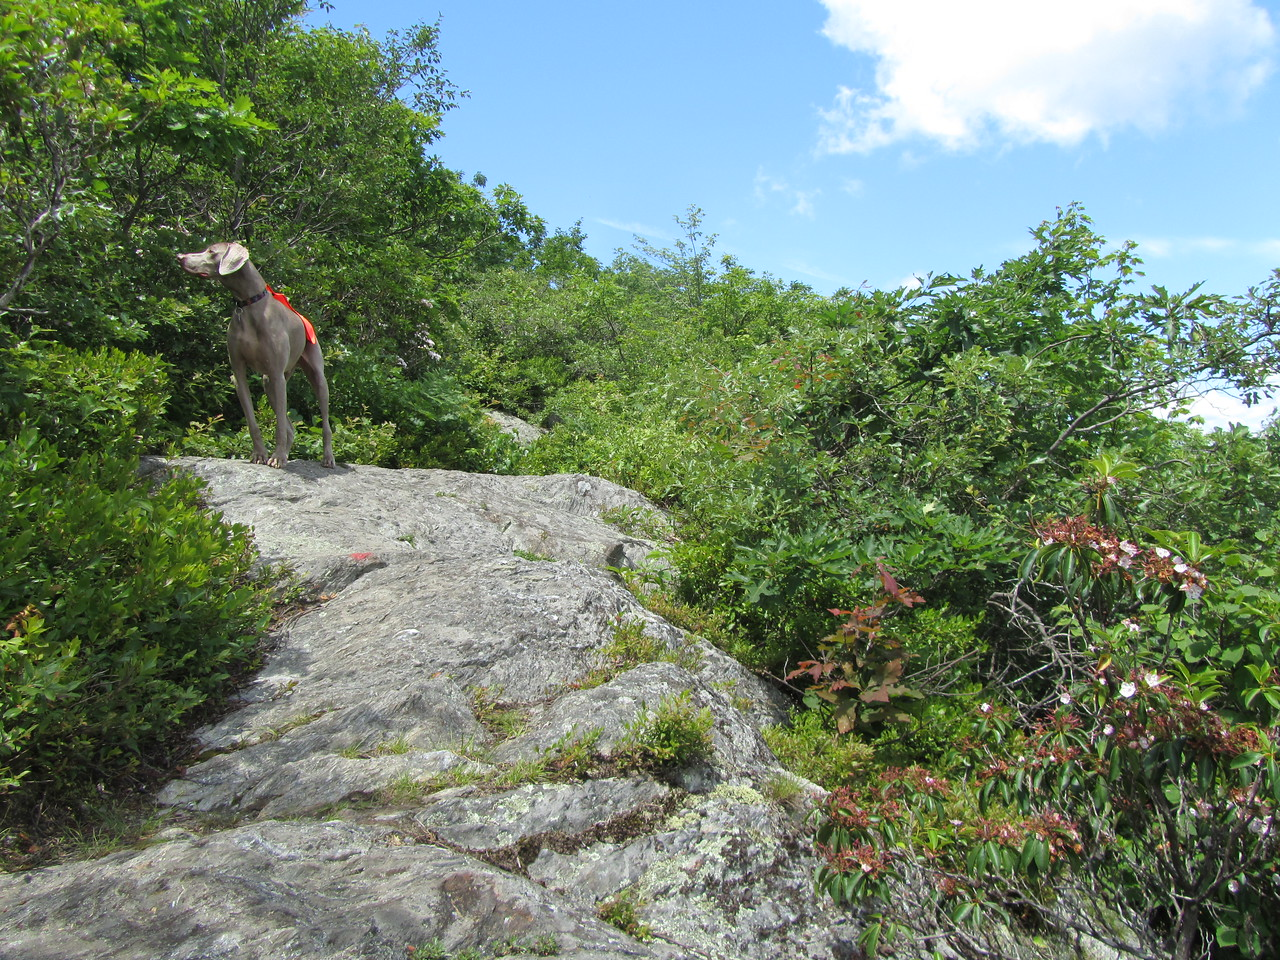 """The """"summit"""" of round mountain. The views were quite impressive after such a short hike. The ground cover: rocks and plants were unique reminding me of Cape Cod."""